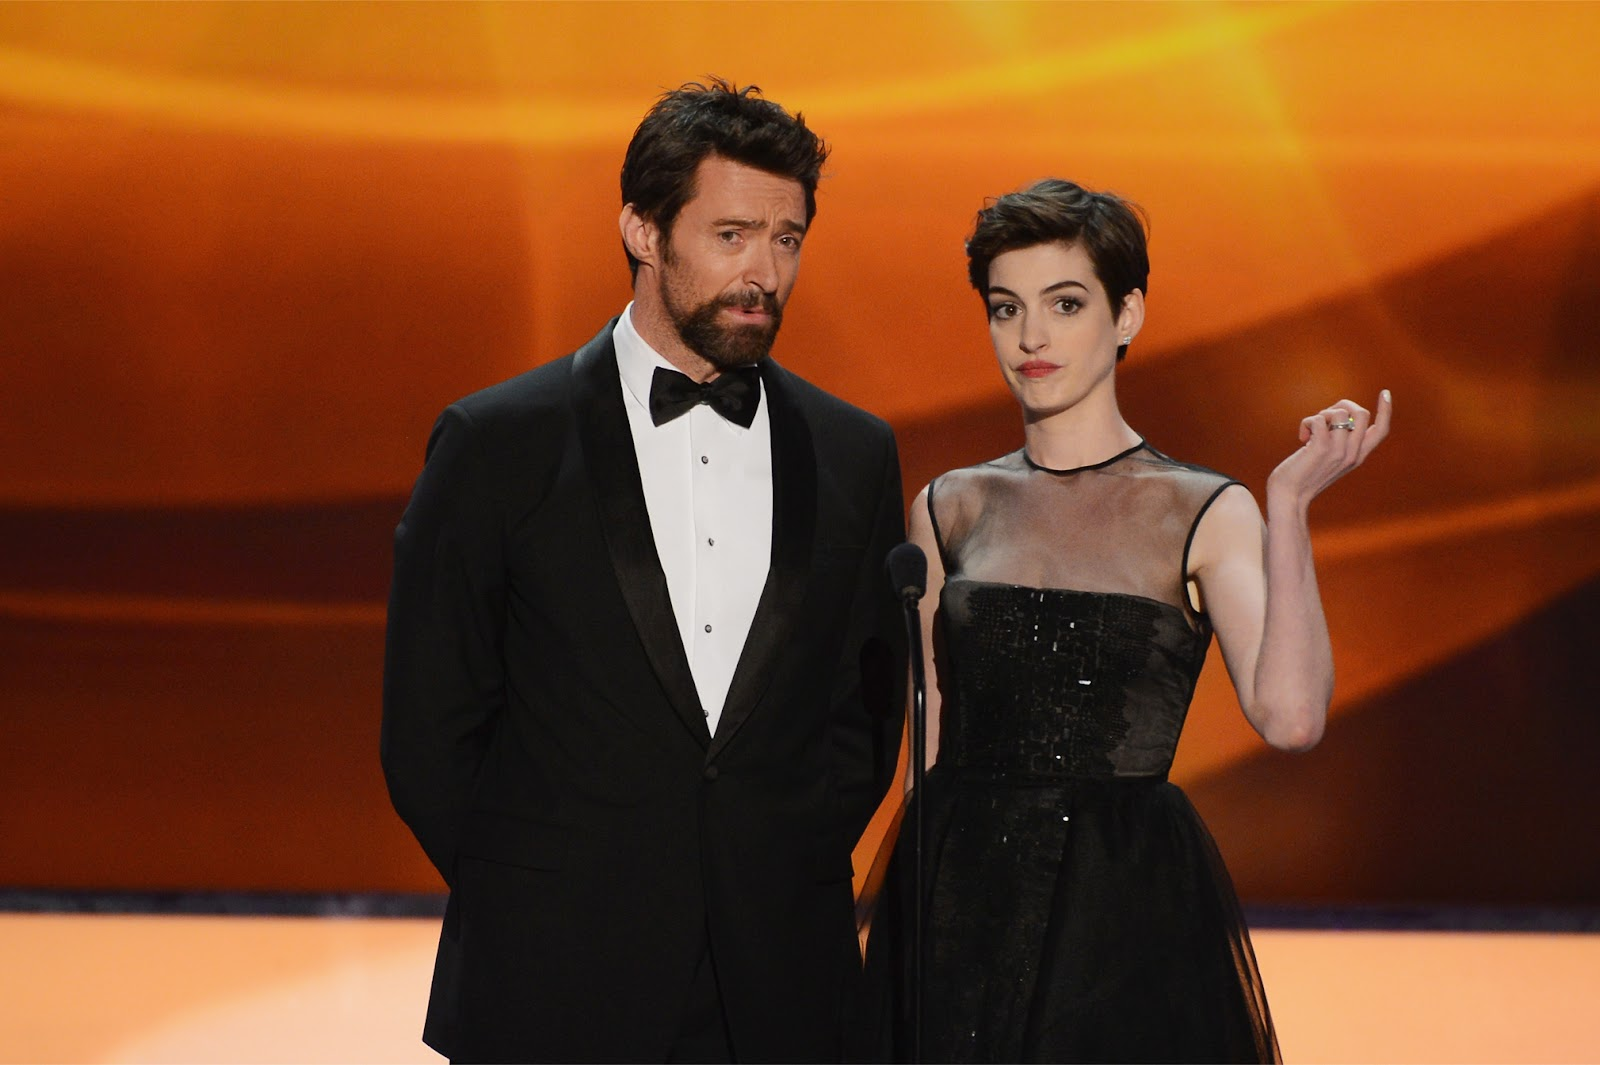 http://1.bp.blogspot.com/-cZNQLz7U56A/UQZ6FN9PrFI/AAAAAAABTEo/yKGA2S_S3so/s1600/Anne_Hathaway-Hugh_Jackman-19th_Annual_Screen_Actors_Guild_Awards-1_27_2013-005.jpg